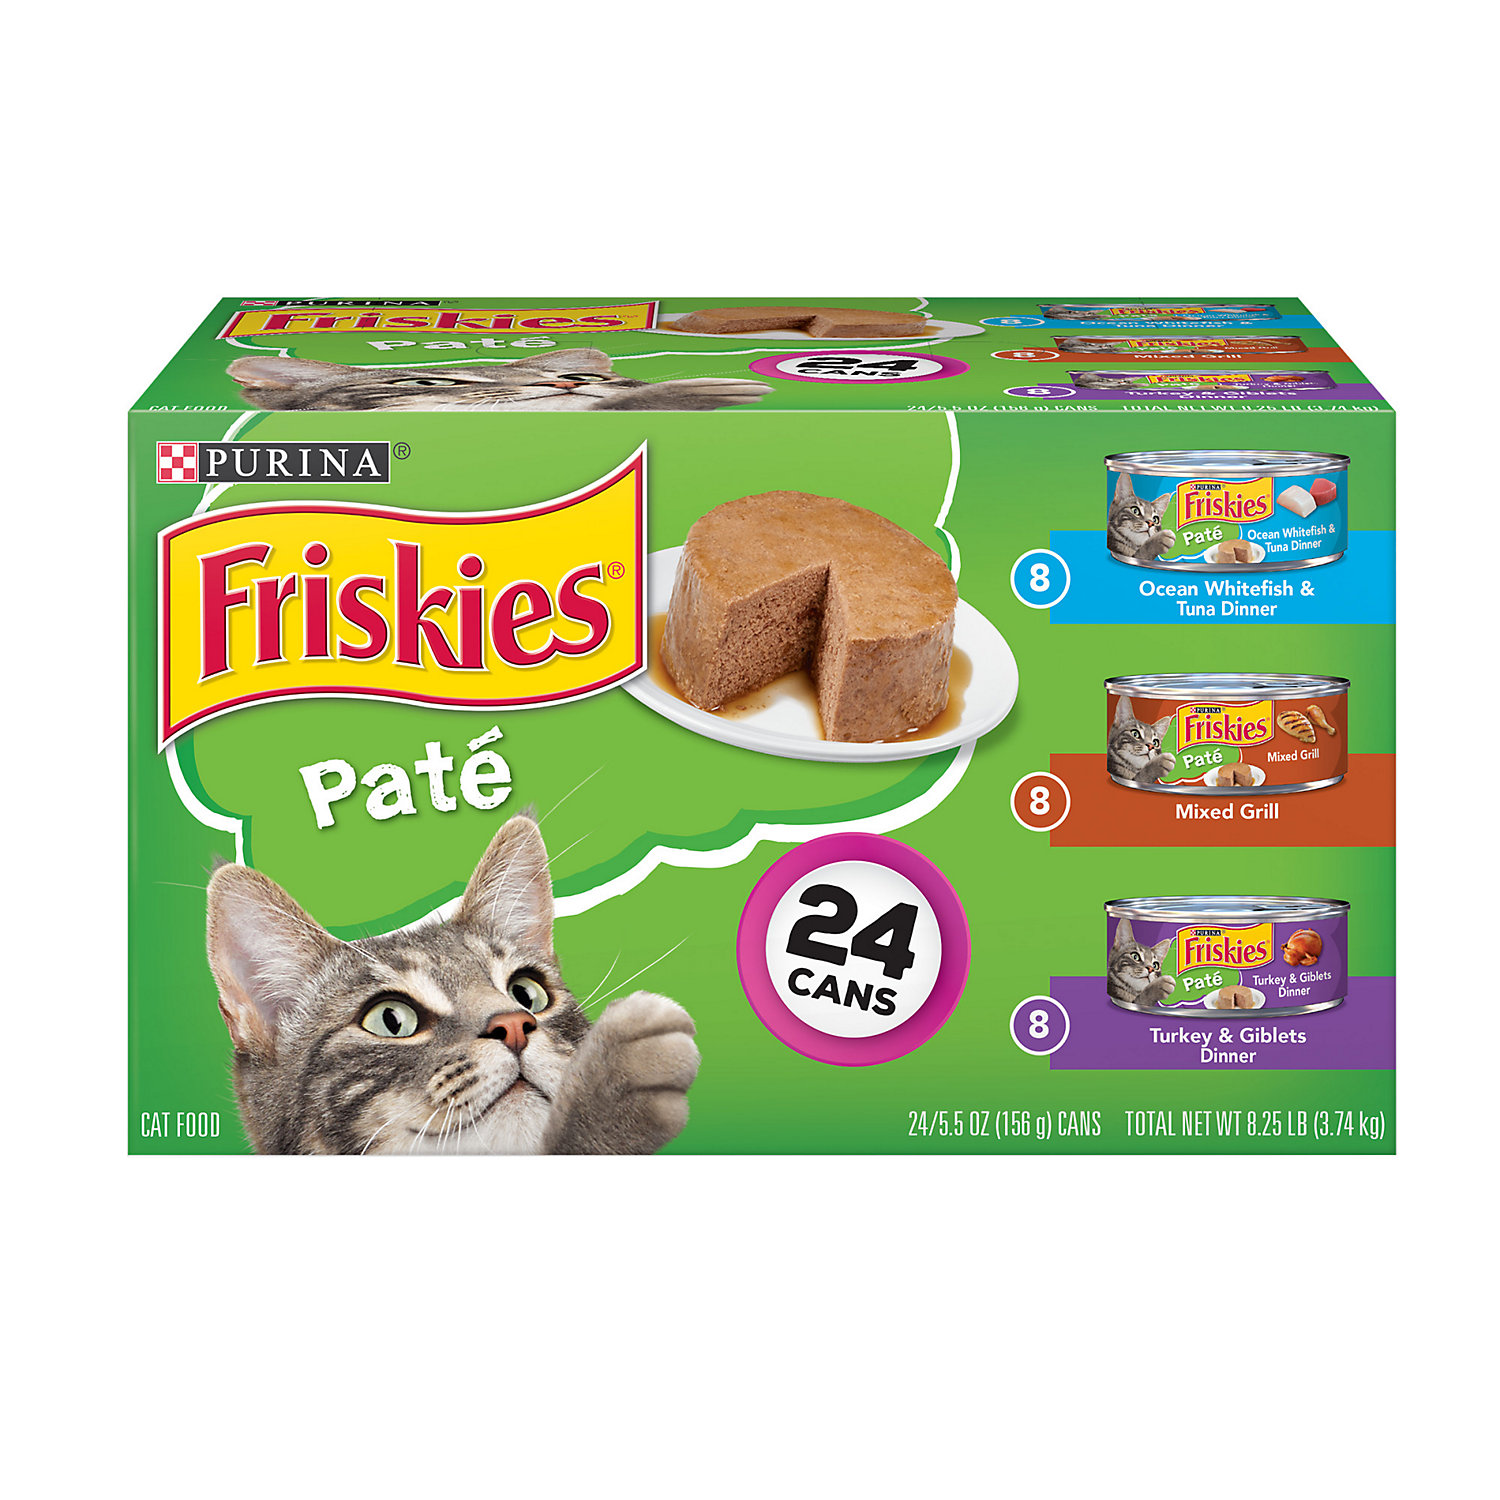 Friskies Mixed Grill Ocean Whitefish Tuna Dinner Turkey Giblets Dinner Loaf Variety Pack Canned Cat Food